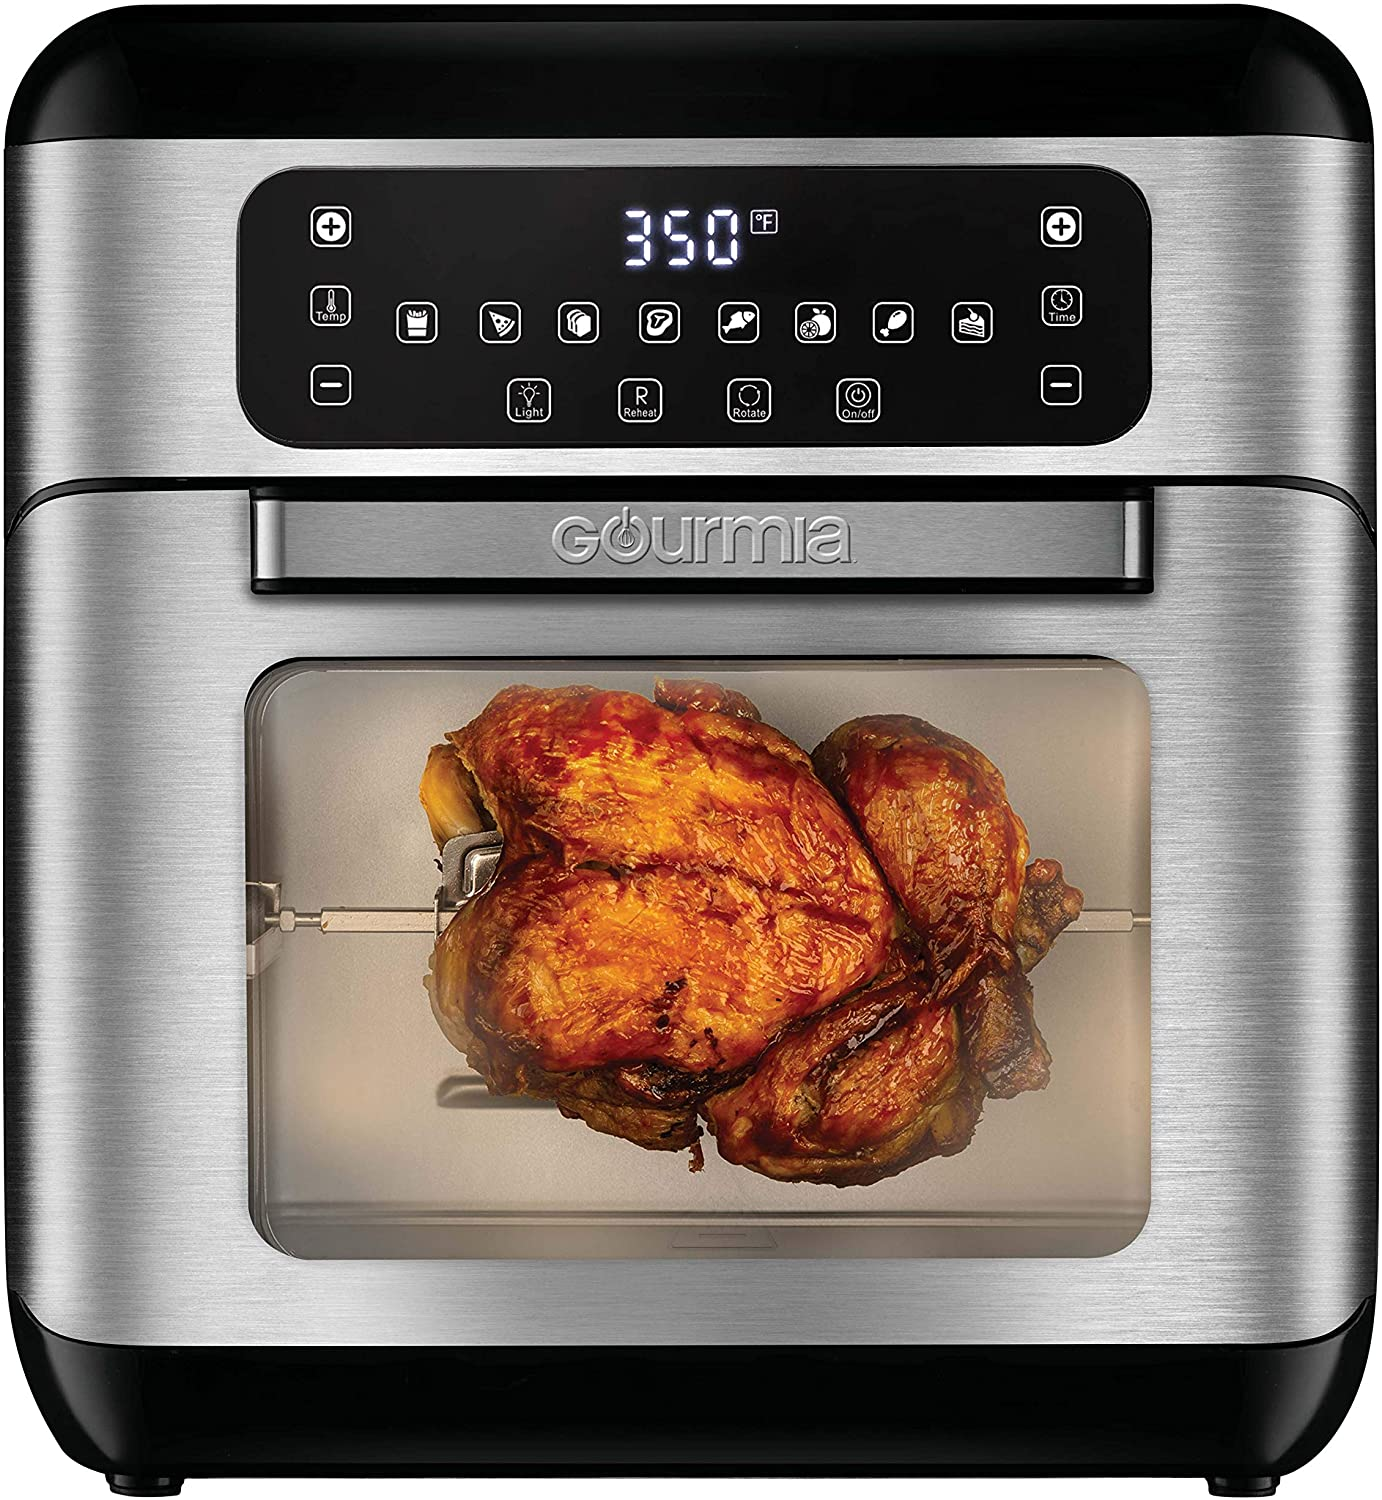 Gourmia GAF688 Digital Stainless Steel 11 Qt Window Free Fry Air Fryer Oven, Rotisserie & Dehydrator - 10 Cook Modes - Accessory Kit Included - Bonus Recipe Book